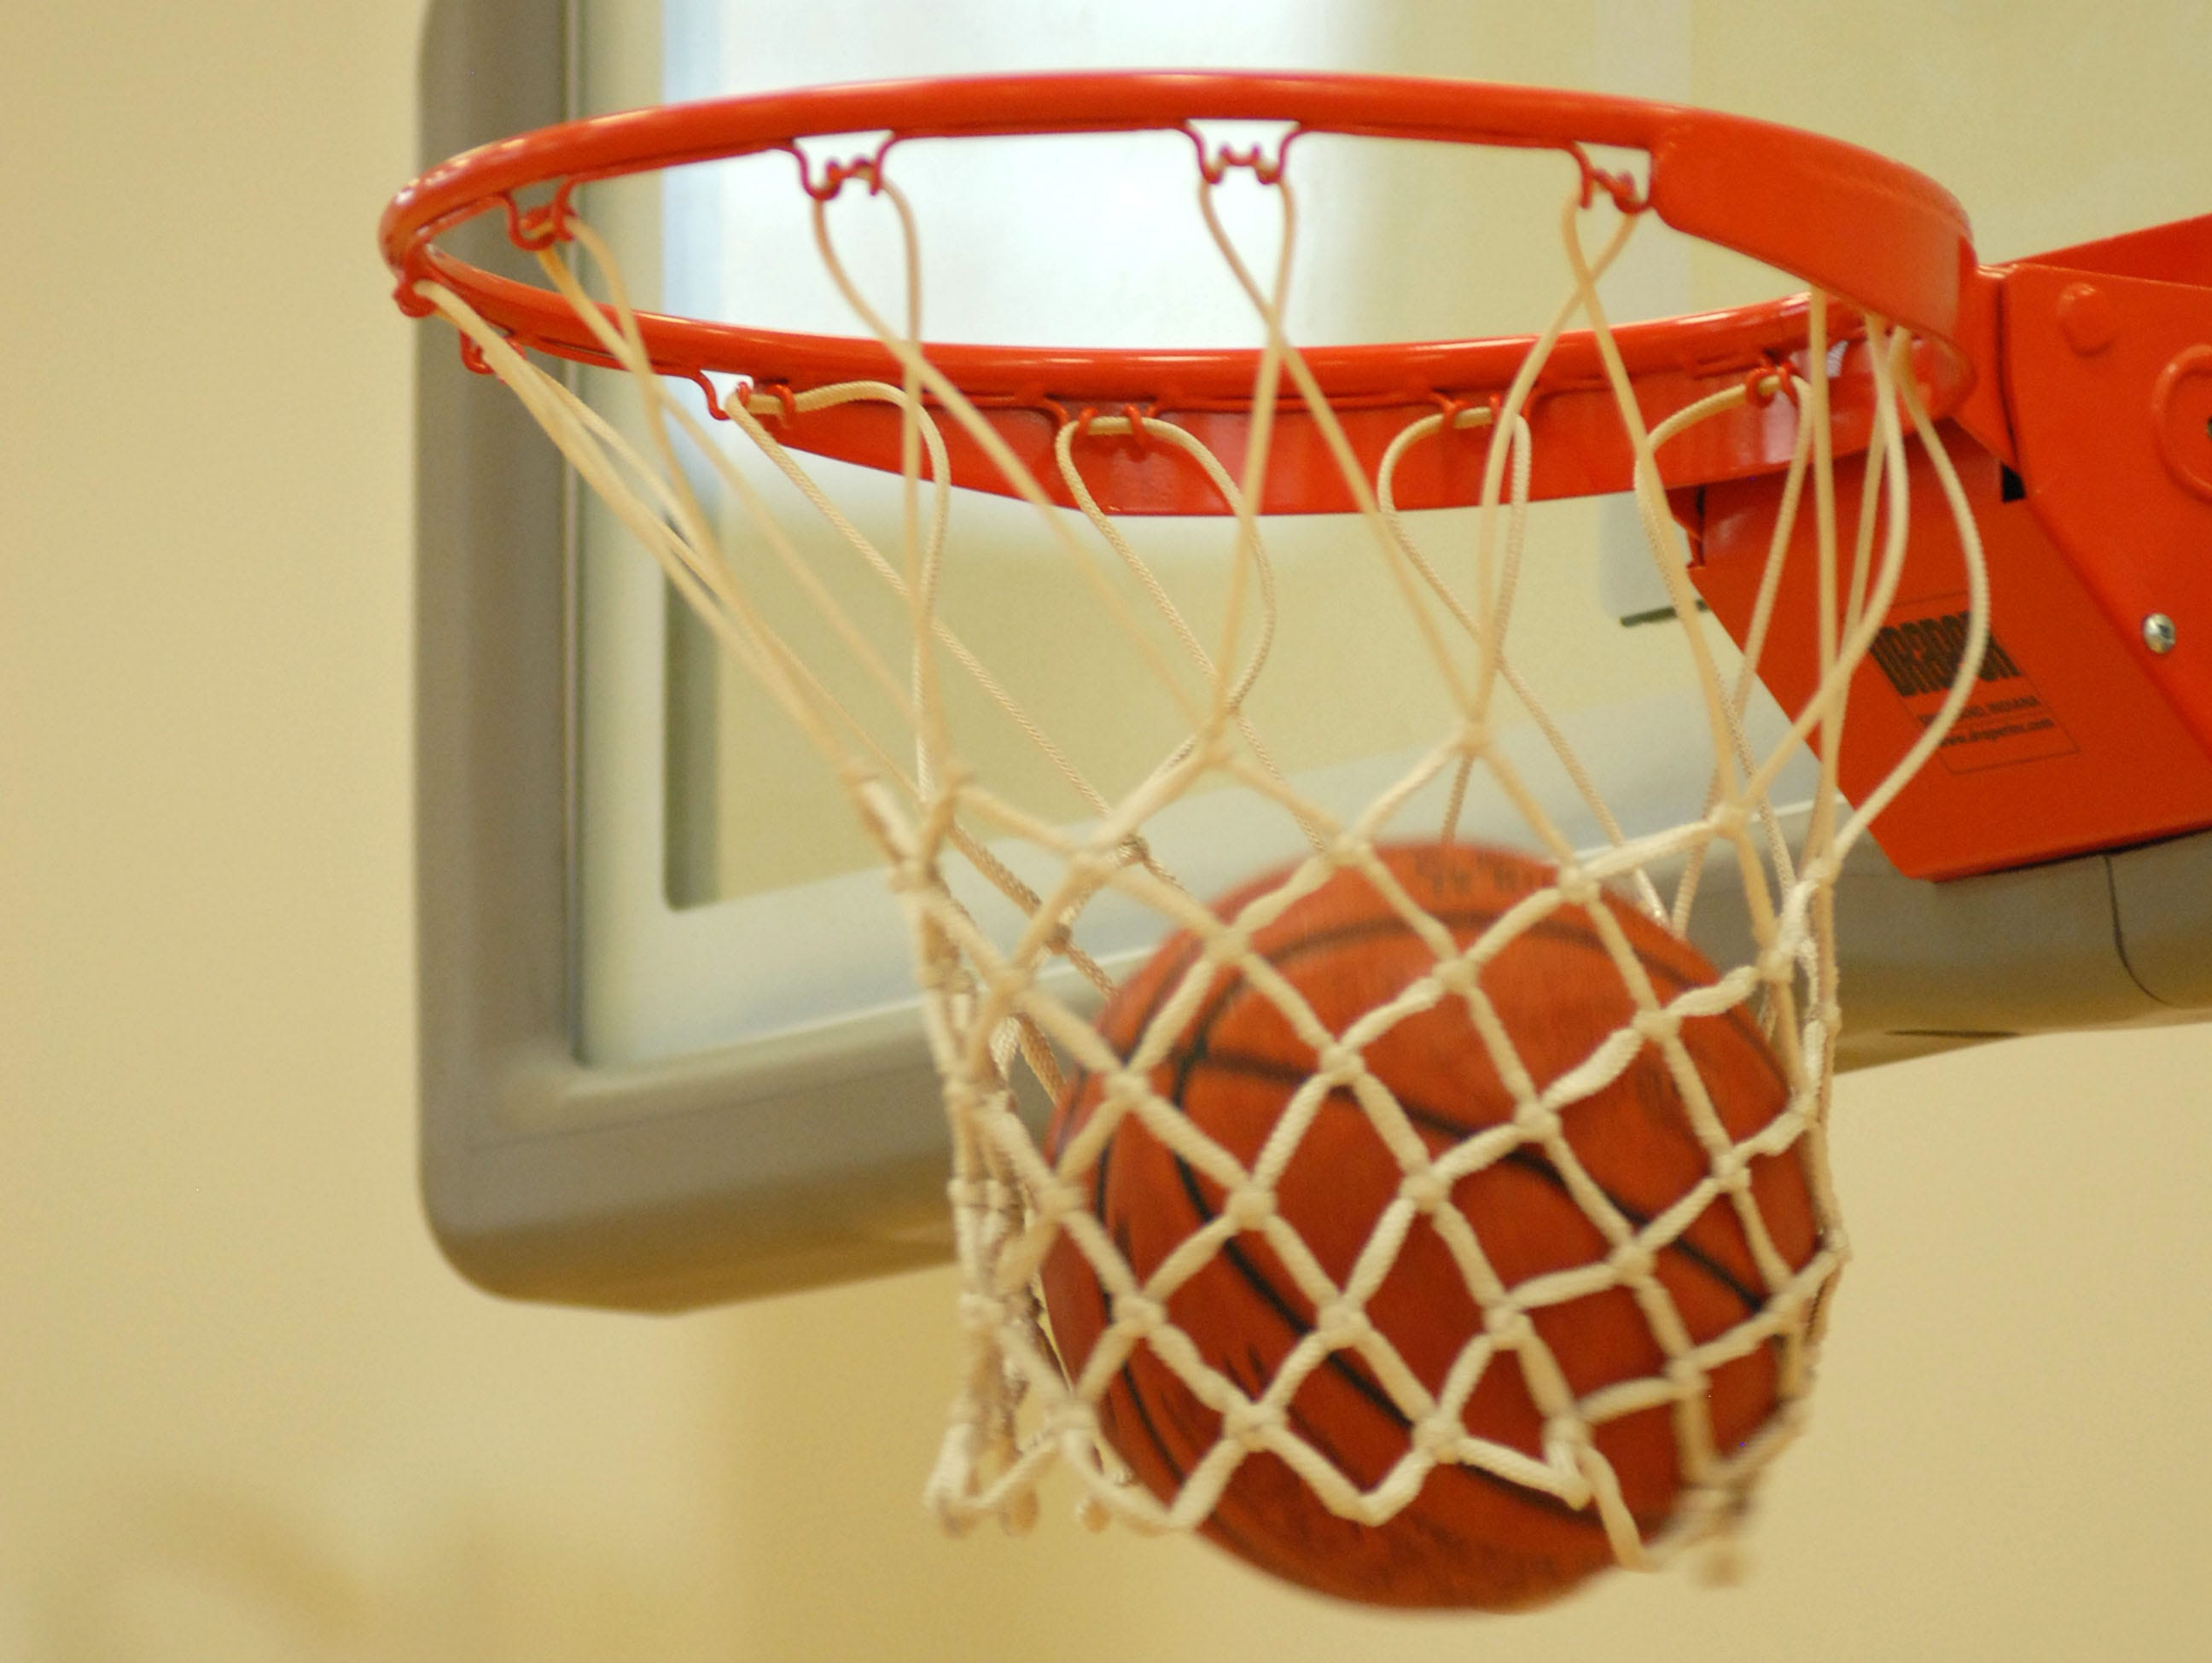 Florida Tech and Eastern Florida basketball teams have conference games Wednesday.